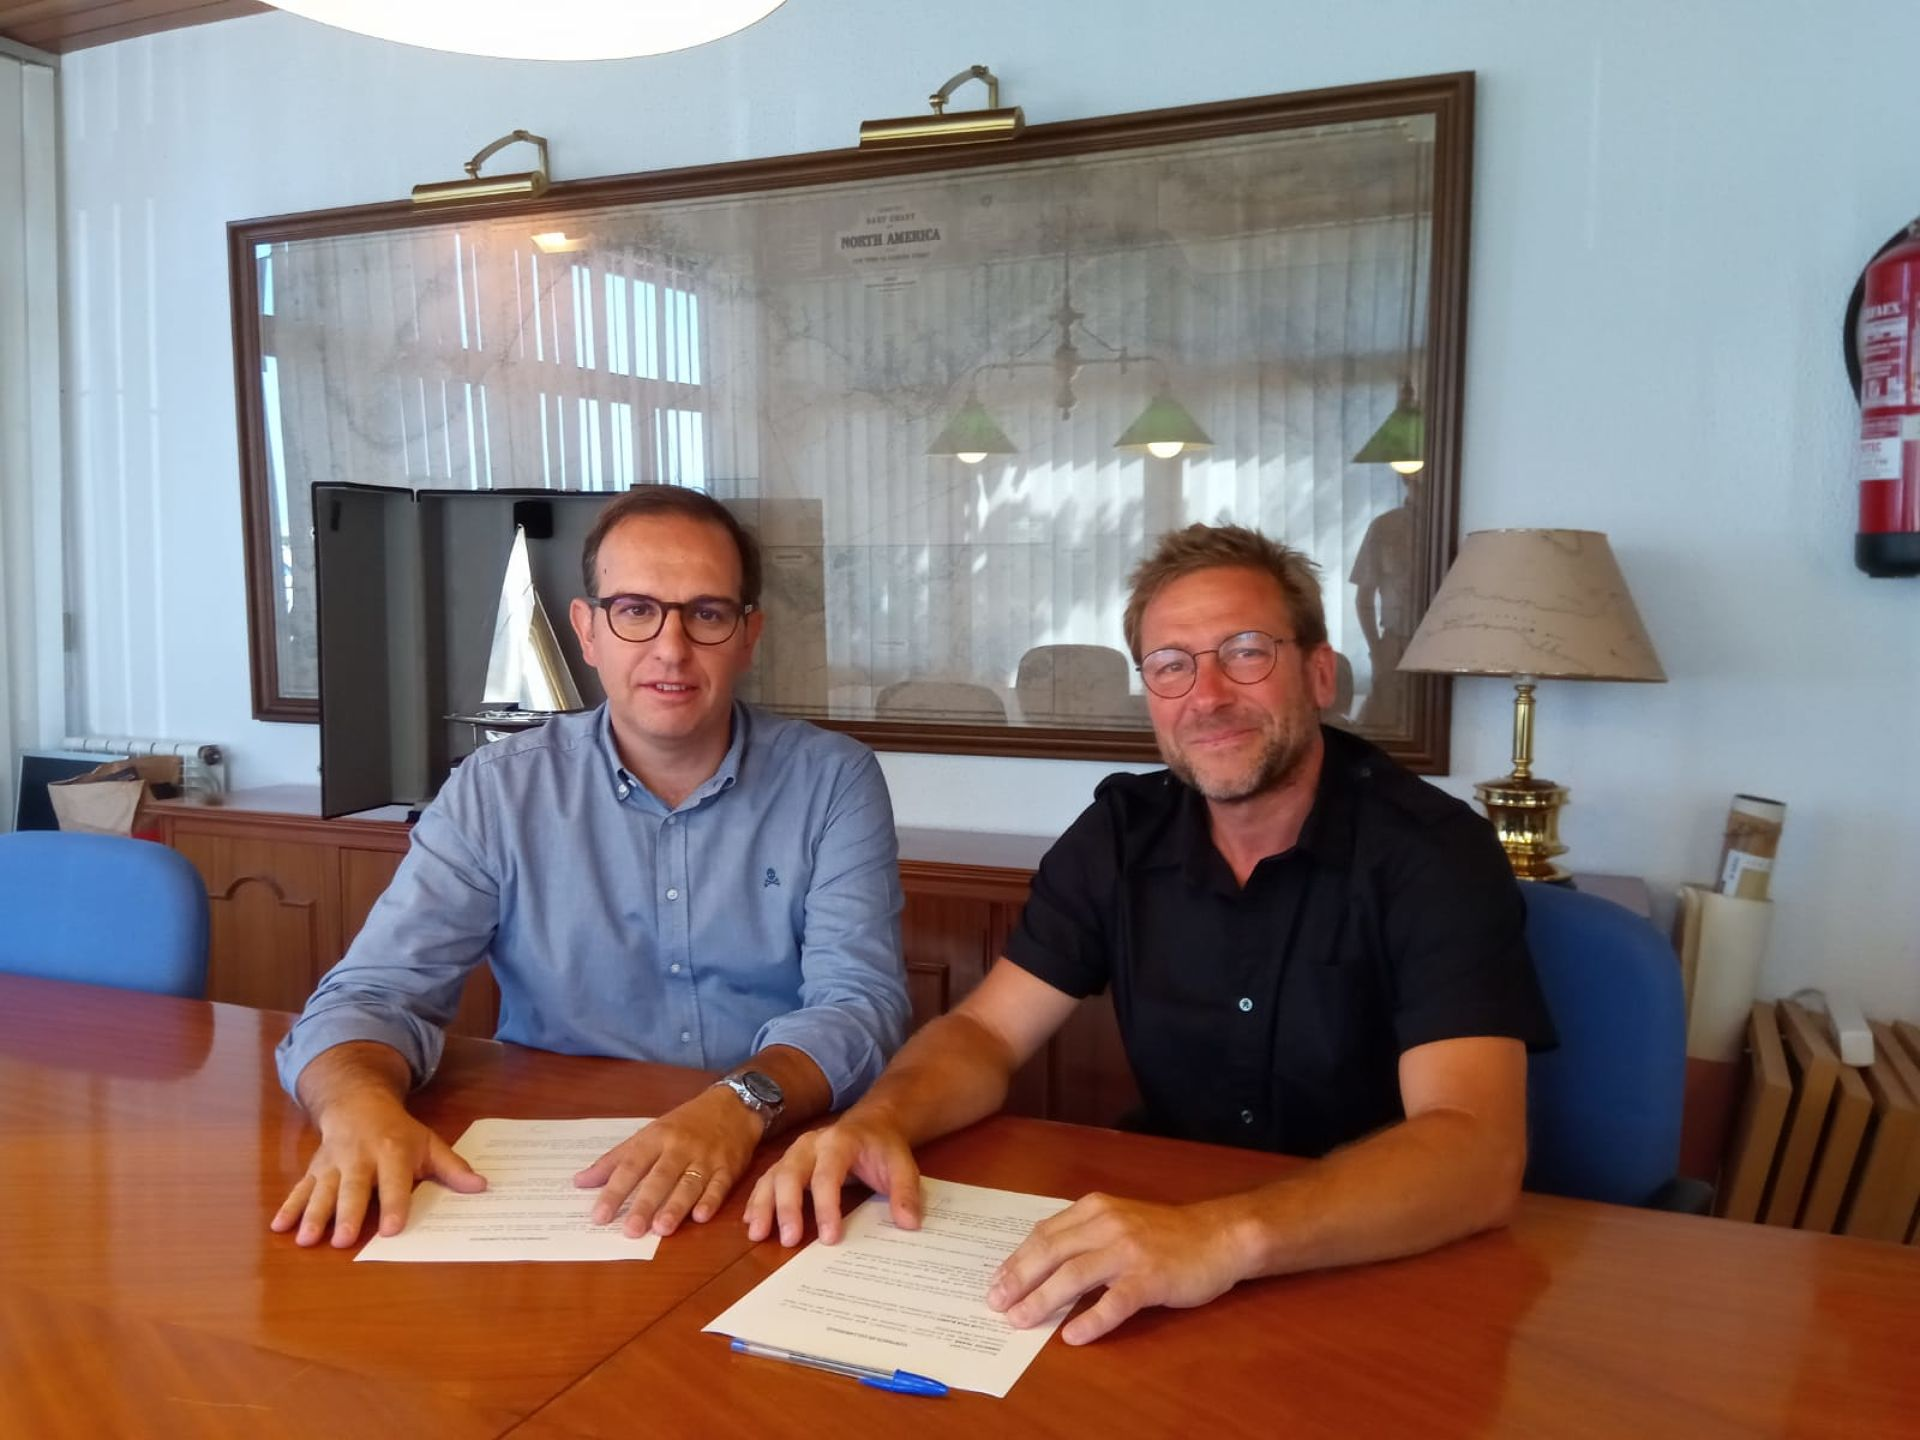 The Club Vela Blanes and Garatge Plana - Mercedes Benz renew the agreement for the Club Sailing School.